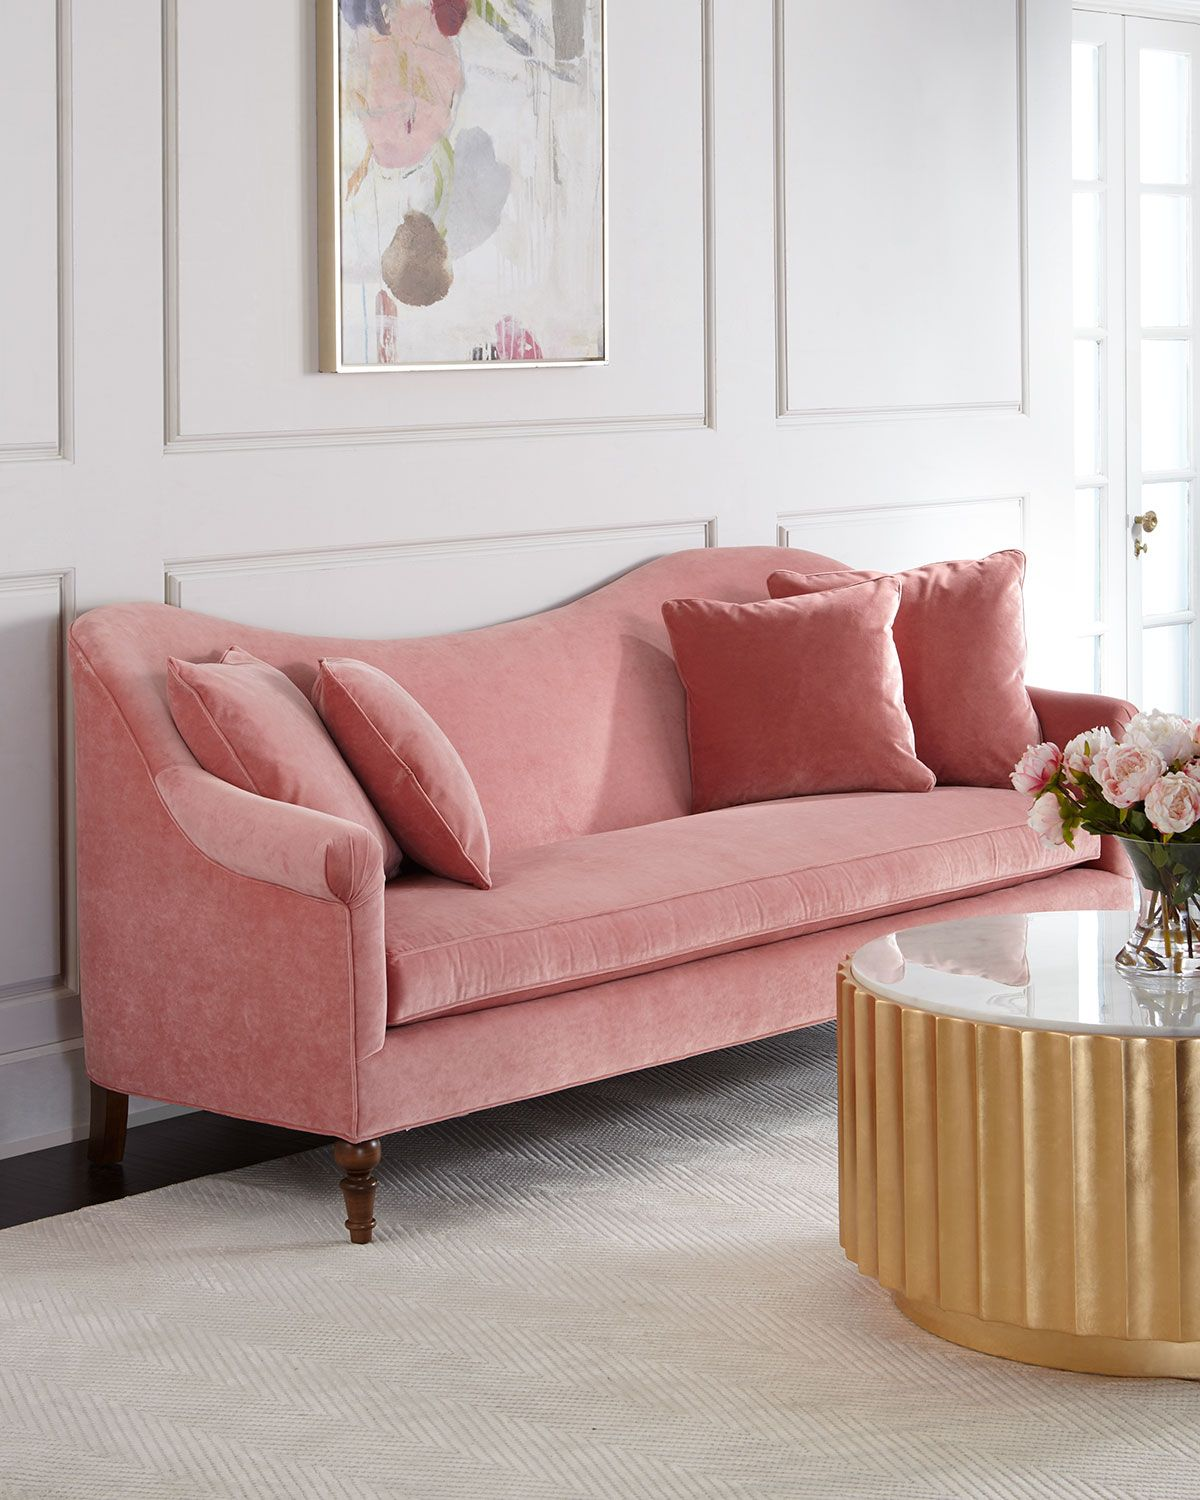 Marvelous Cerise Velvet Sofa 93 Pink Velvet Sofa Pink Sofa Sofa Design Caraccident5 Cool Chair Designs And Ideas Caraccident5Info